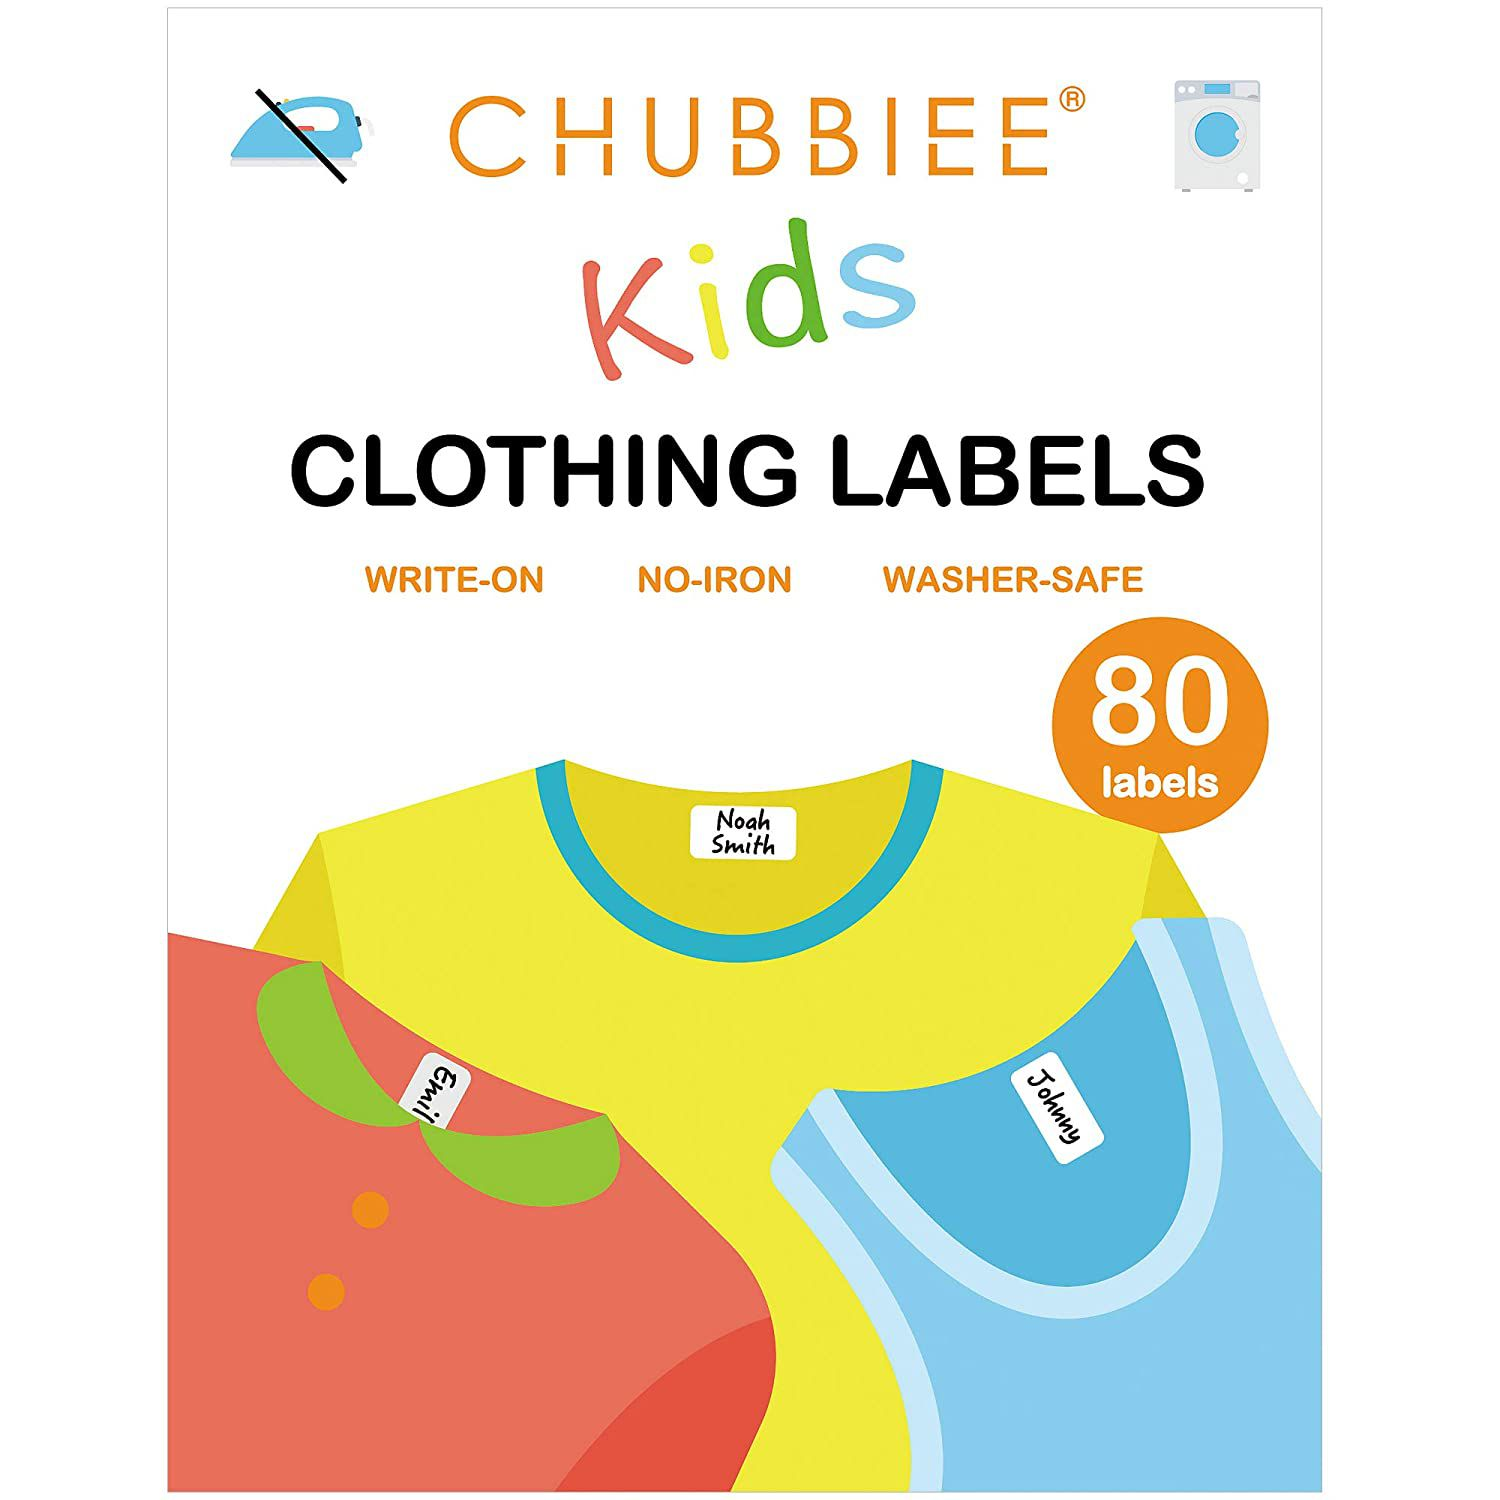 Choose Your Animal Black Ink Stamp Your Clothes with Your Custom Name Great for Kids T-Shirts Clothing Stamp Customized Stamp Your Name on Prime Clothes. 2 Line Stamper Kids Clothing Stamp